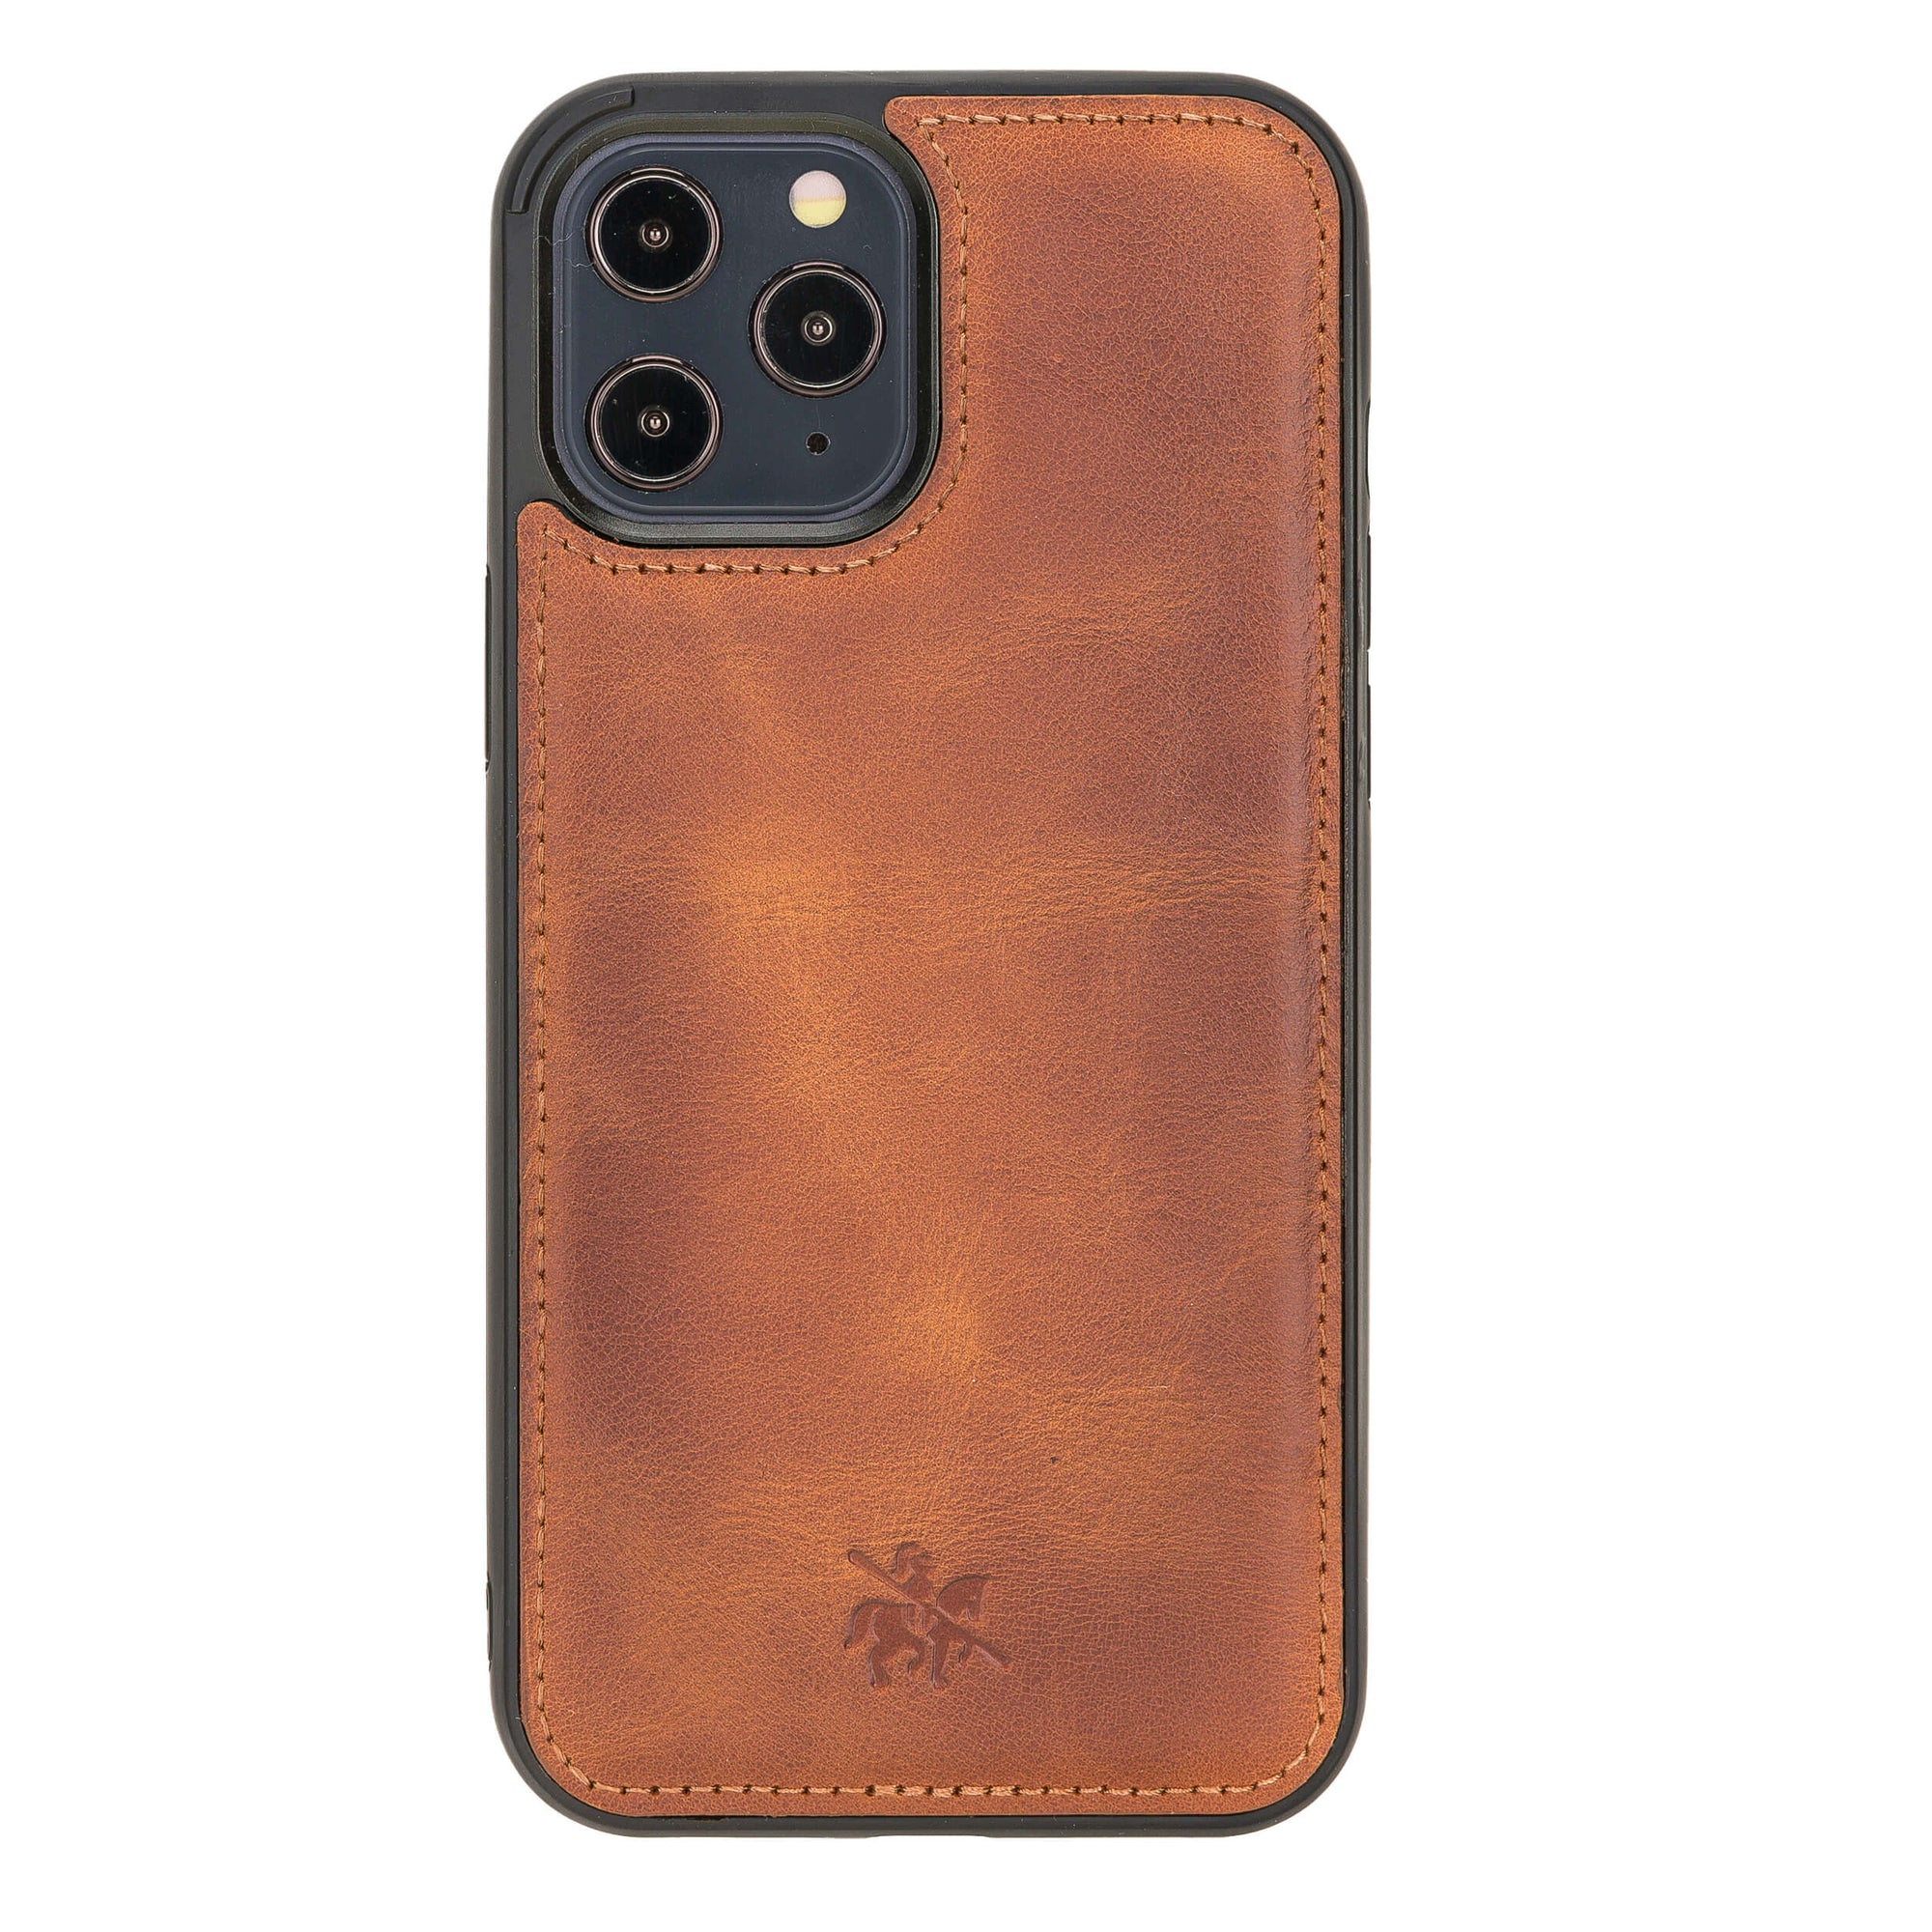 Lucca Snap On Leather Case for iPhone 12 Pro